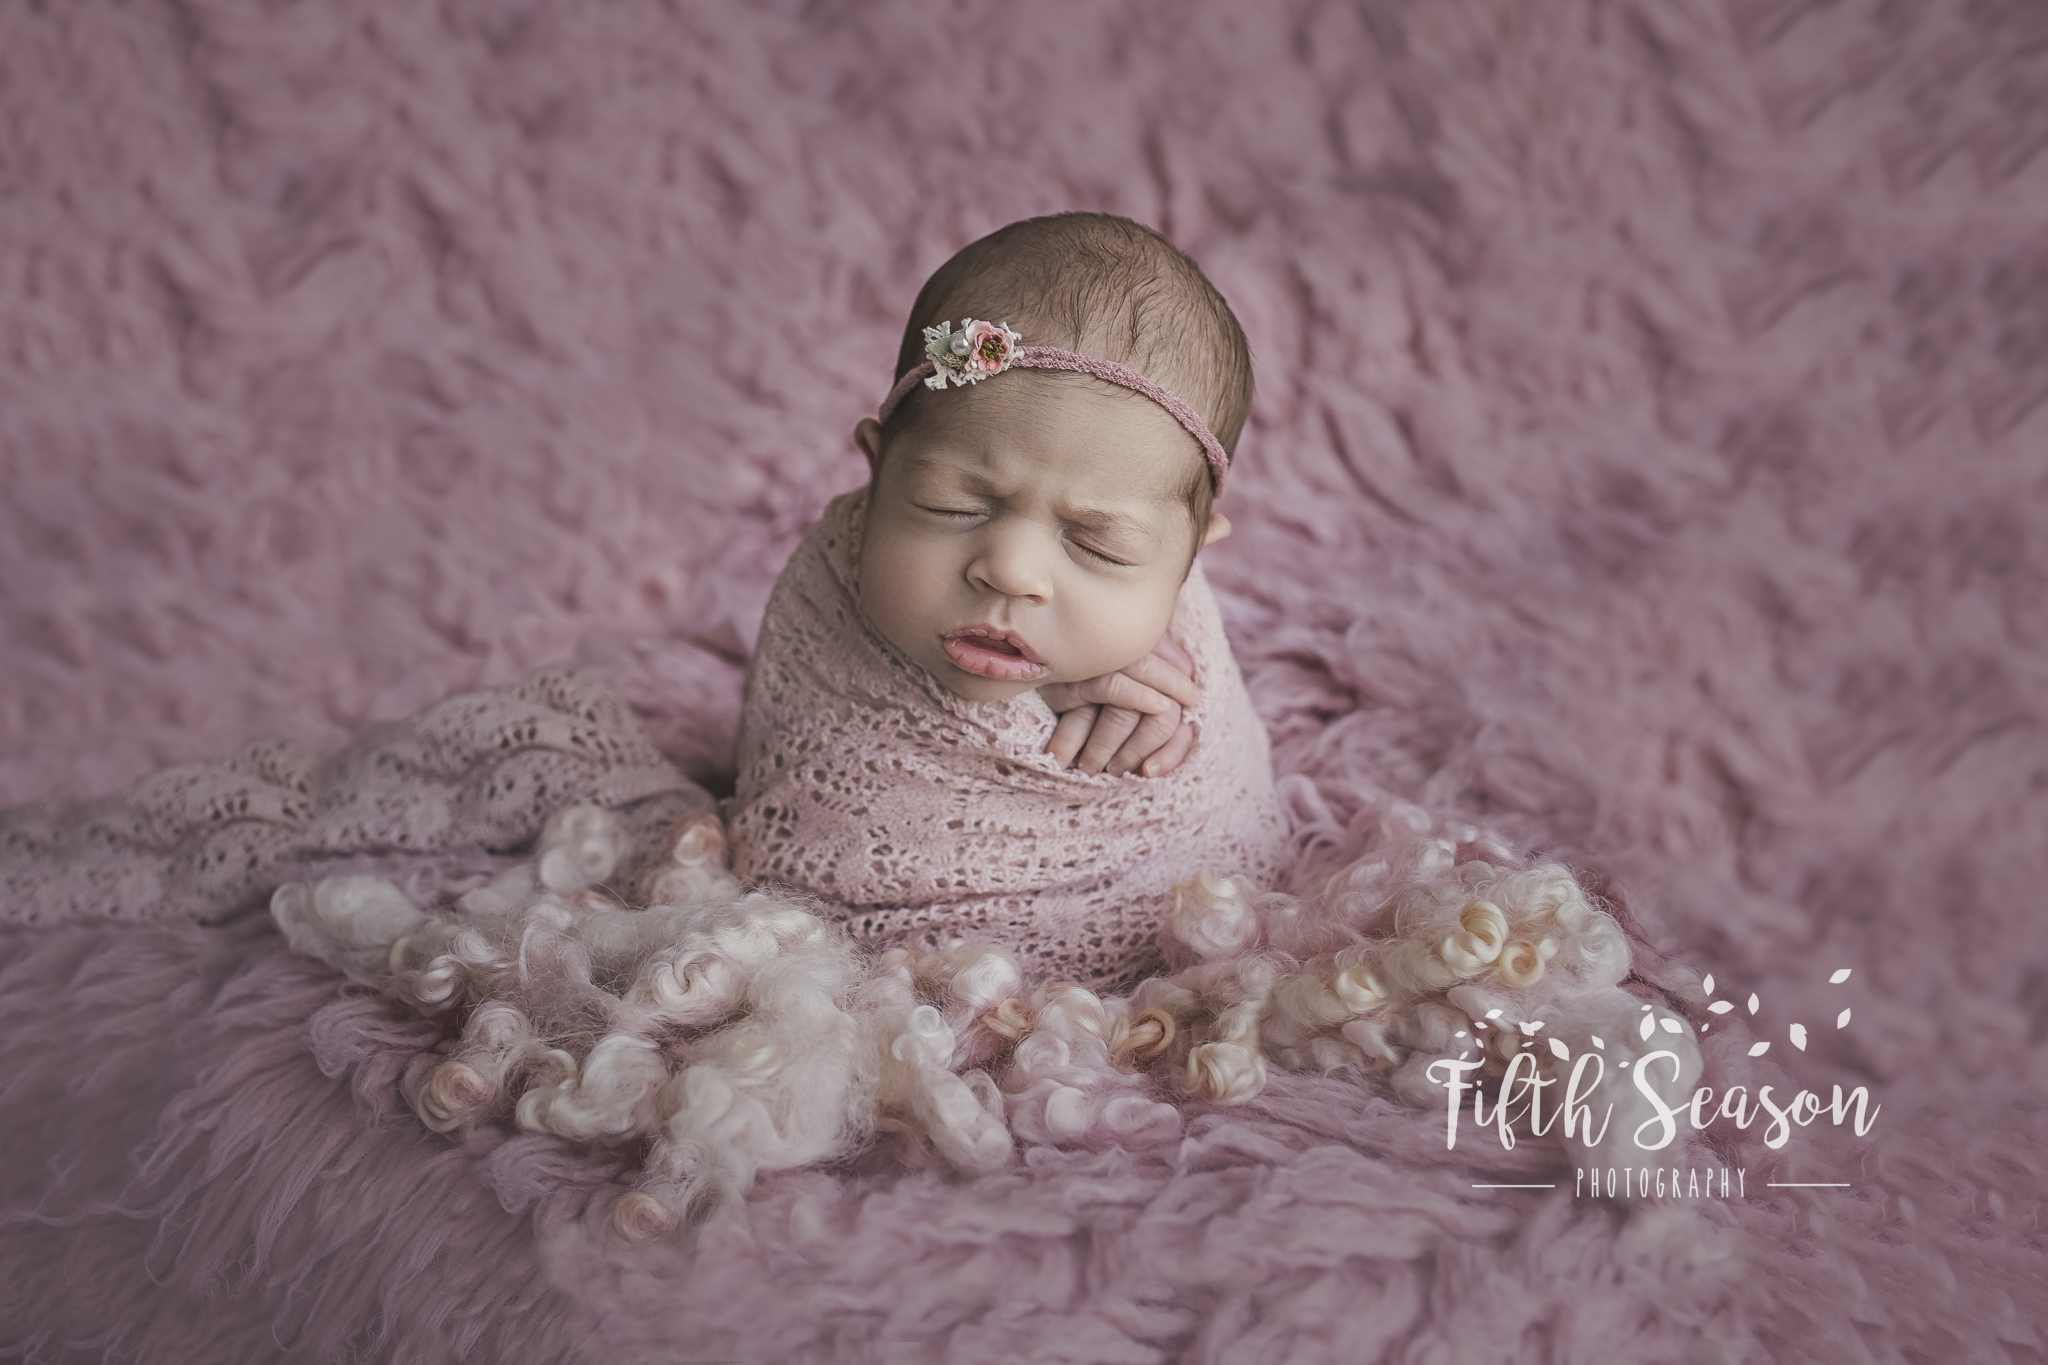 Compositing is vital for a lot of posing with newborns,hands are on baby at all times in this pose.